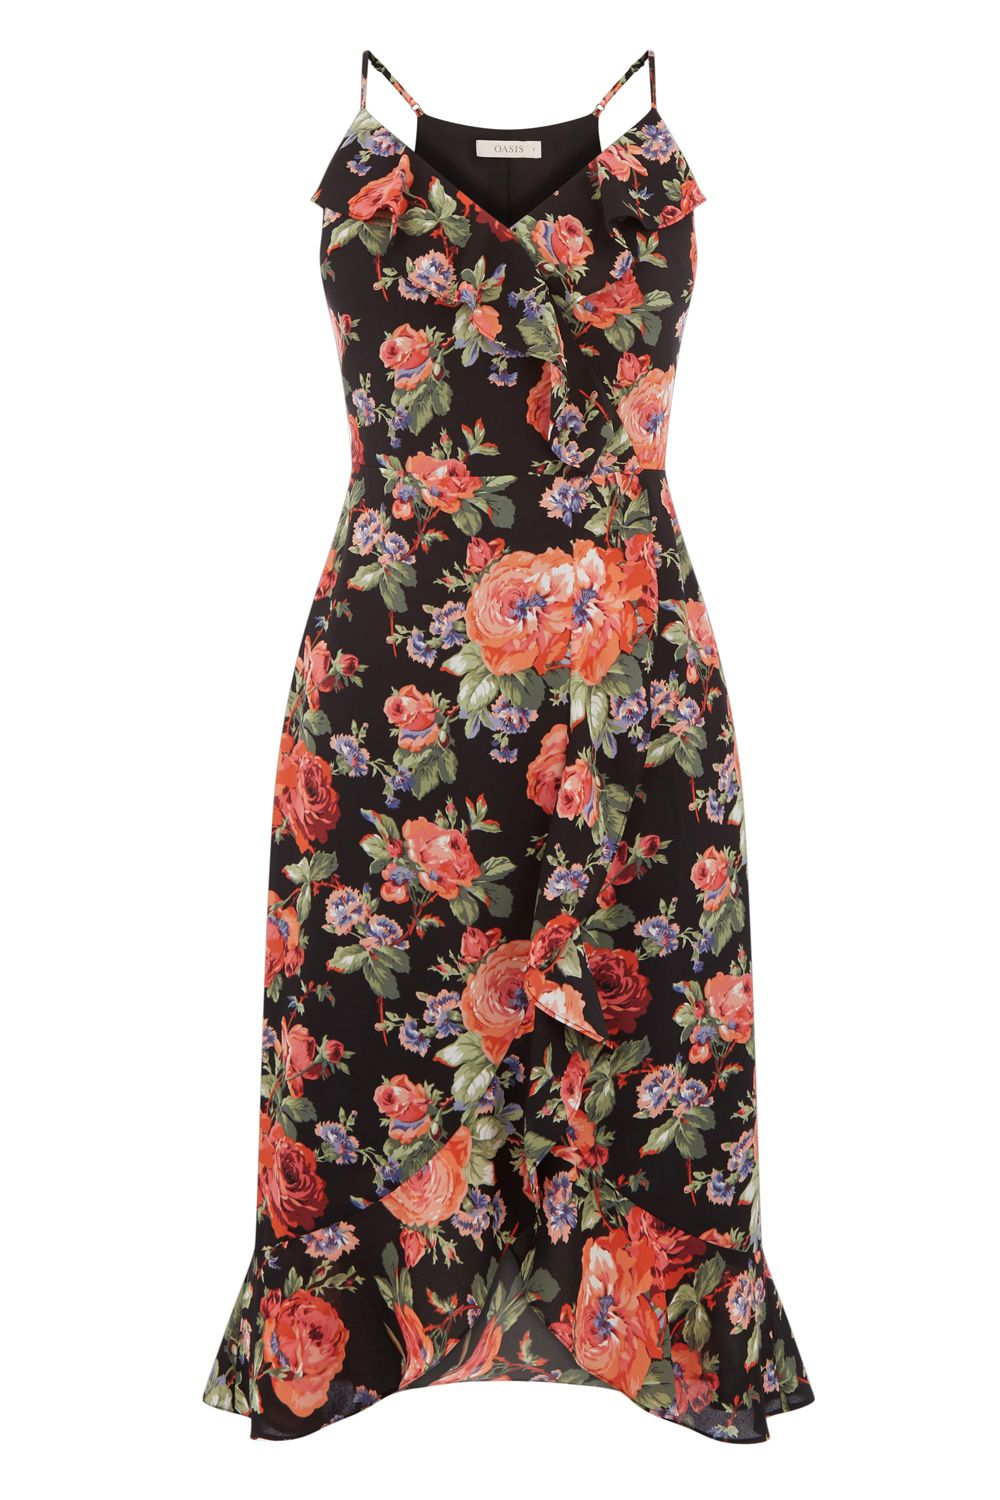 Oasis FRILL ROSE MIDI DRESS, Multi-Coloured